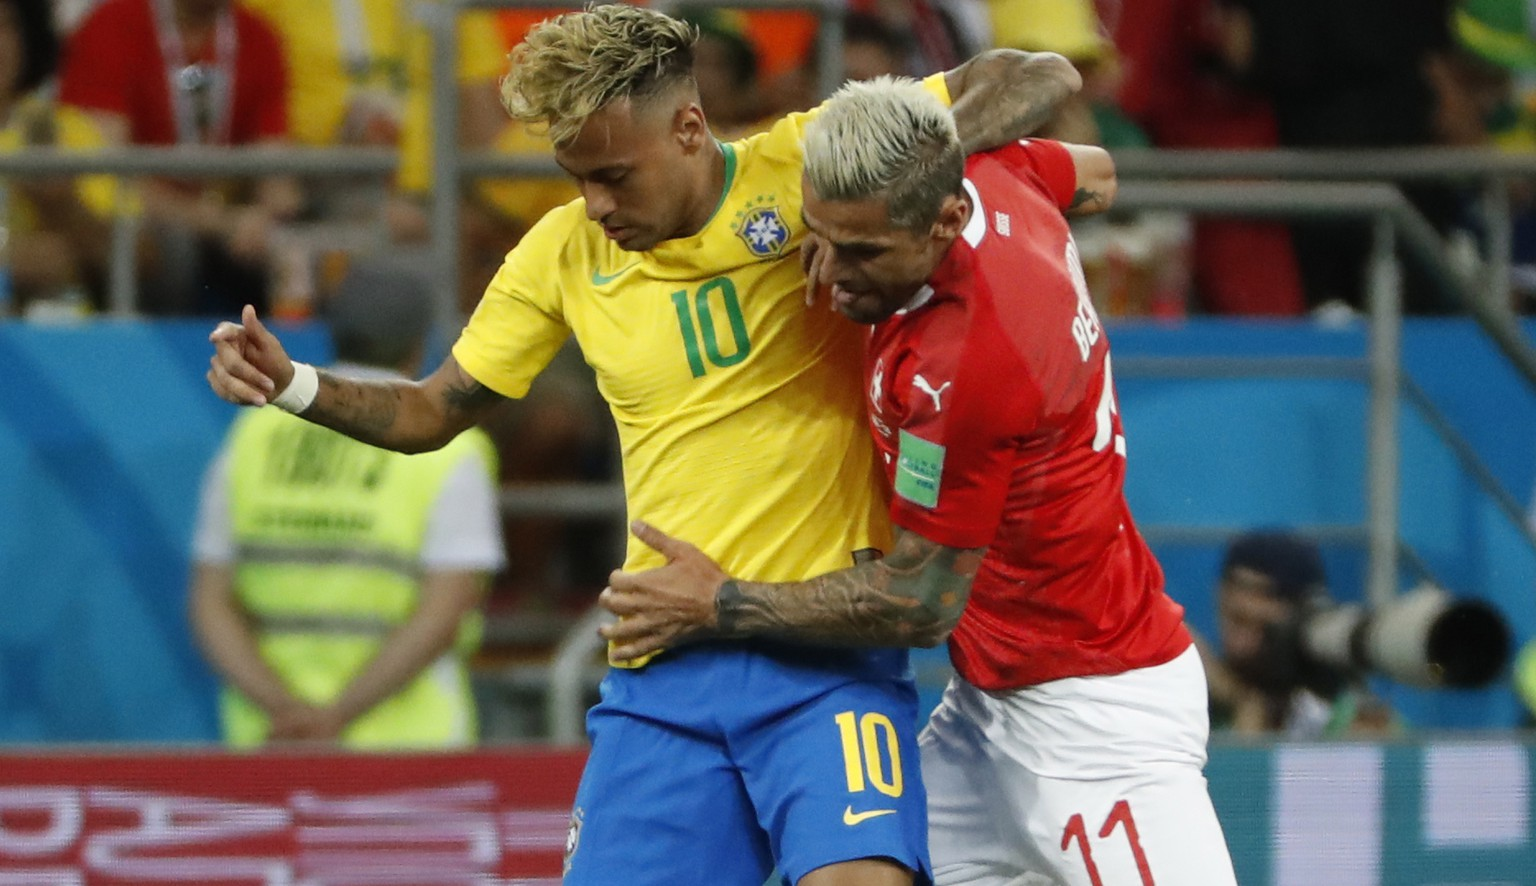 epa06816775 Neymar (L) of Brazil and Valon Behrami of Switzerland in action during the FIFA World Cup 2018 group E preliminary round soccer match between Brazil and Switzerland in Rostov-On-Don, Russia, 17 June 2018.